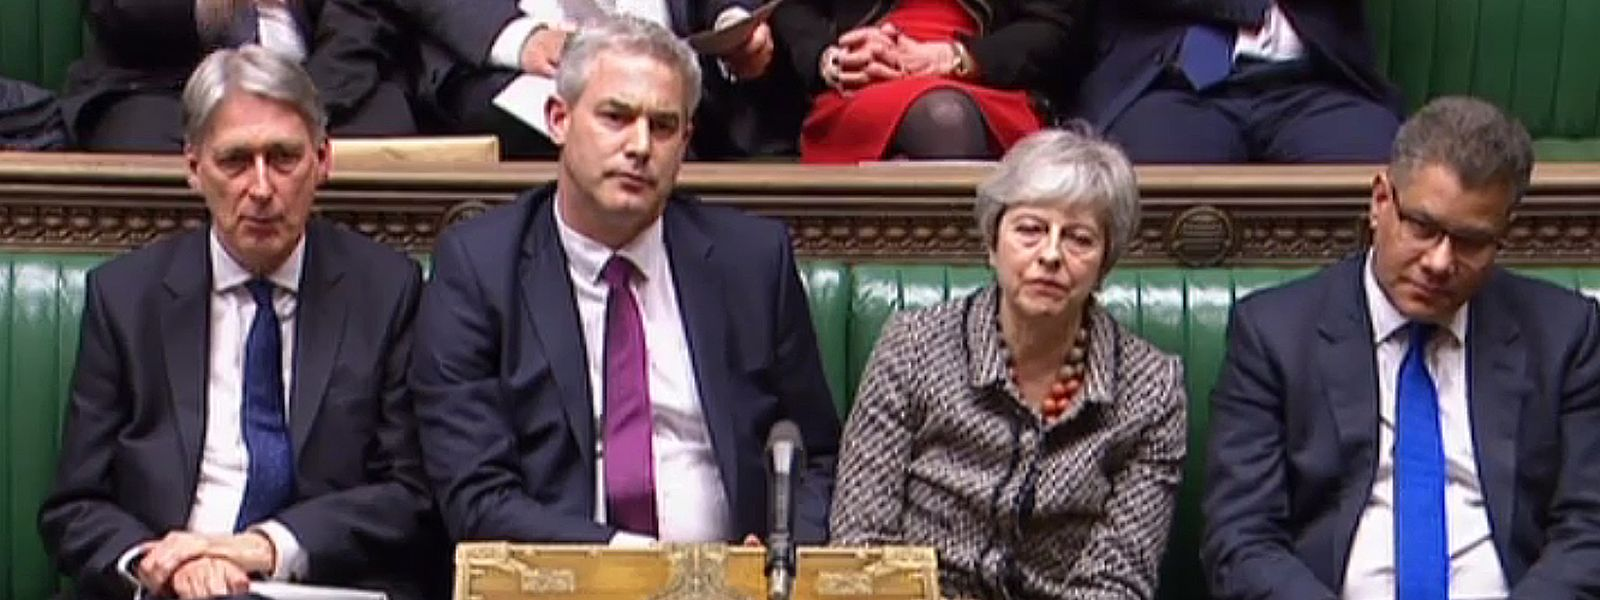 """A video grab from footage broadcast by the UK Parliament's Parliamentary Recording Unit (PRU) shows Britain's Chancellor of the Exchequer Philip Hammond (2L), Britain's Secretary of State for Exiting the European Union (Brexit Minister) Stephen Barclay (C) and Britain's Prime Minister Theresa May listen as opposition leader Jeremy Corbyn speaks in the House of Commons in London on April 1, 2019, following the outcome of the second round of indicative votes on the alternative options for Brexit. - British MPs tried again to chart a new Brexit path on April 1 after rejecting Prime Minister Theresa May's deal for a third time, but the EU warned its patience was wearing thin. (Photo by - / PRU / AFP) / RESTRICTED TO EDITORIAL USE - MANDATORY CREDIT """" AFP PHOTO / PRU """" - NO USE FOR ENTERTAINMENT, SATIRICAL, MARKETING OR ADVERTISING CAMPAIGNS"""